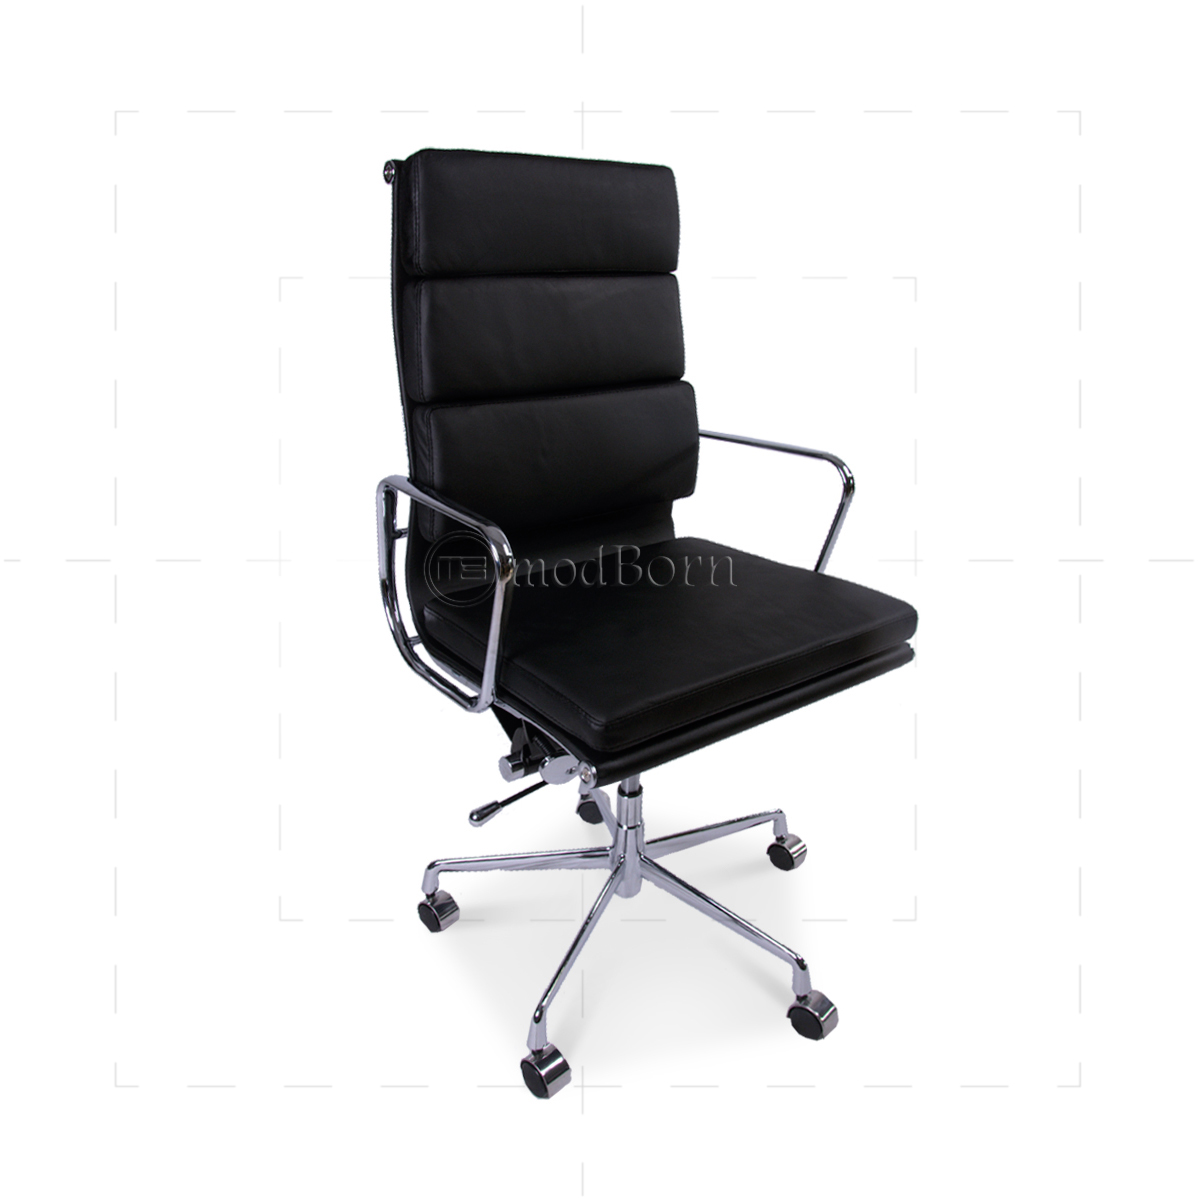 ea219 eames style office chair high back soft pad black. Black Bedroom Furniture Sets. Home Design Ideas